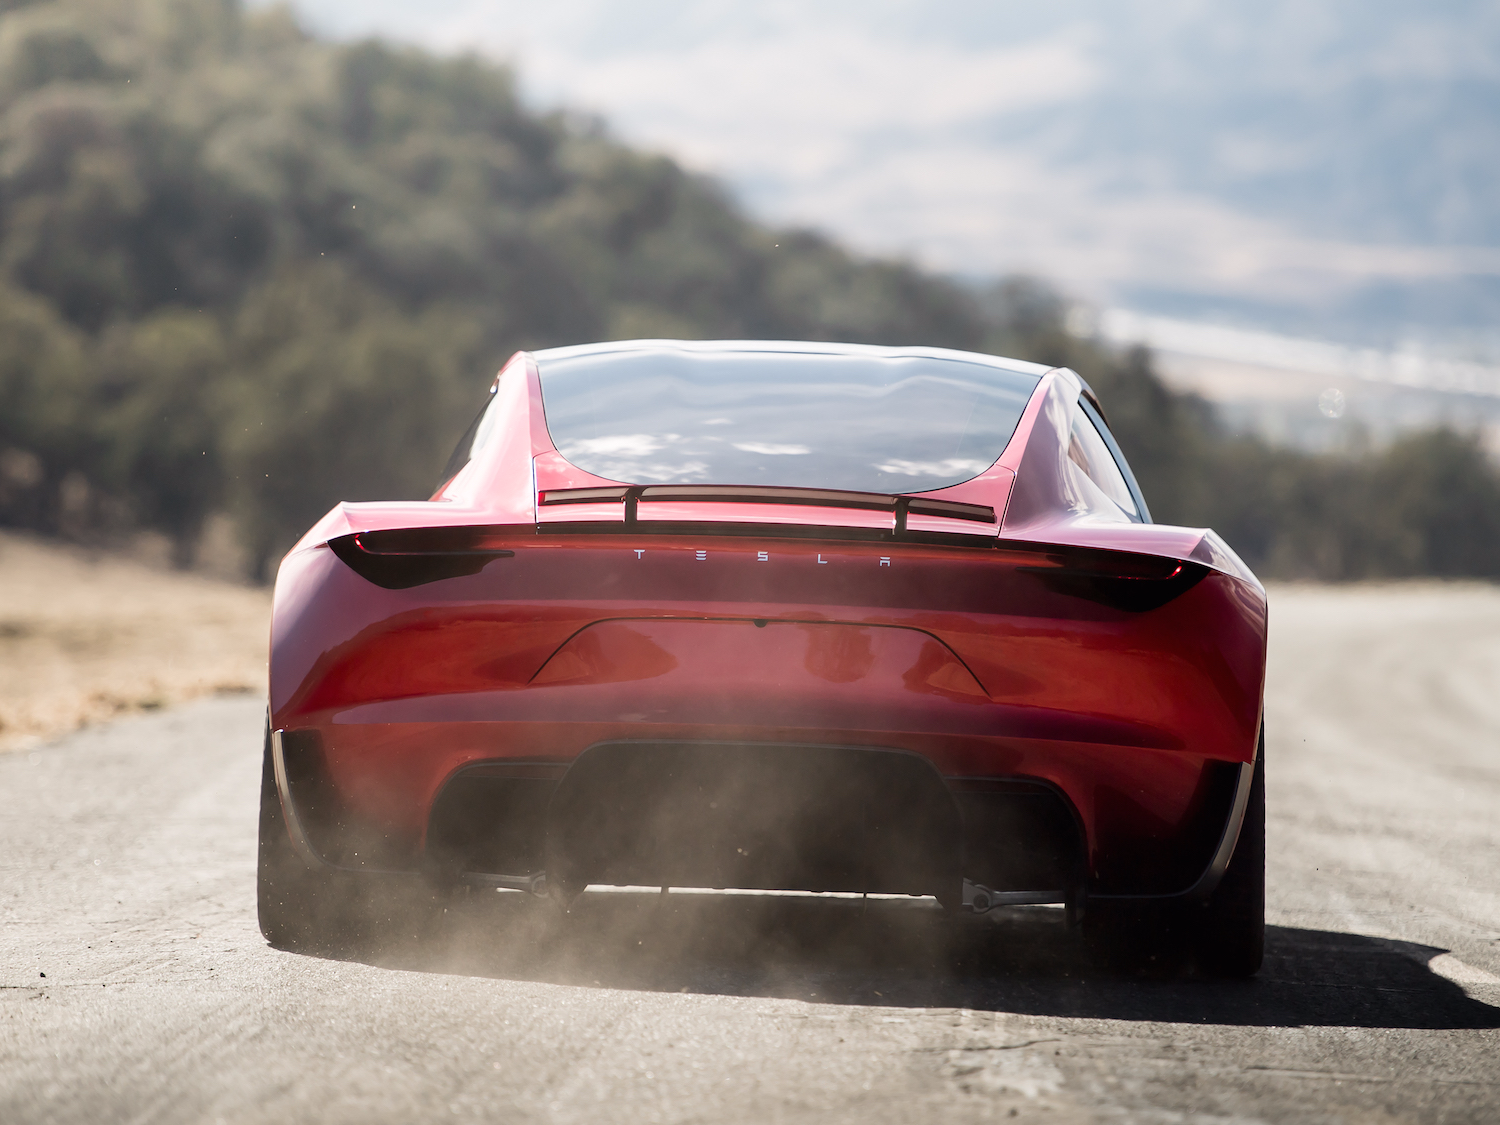 35 Gallery of 2020 Tesla Roadster Launch Performance for 2020 Tesla Roadster Launch